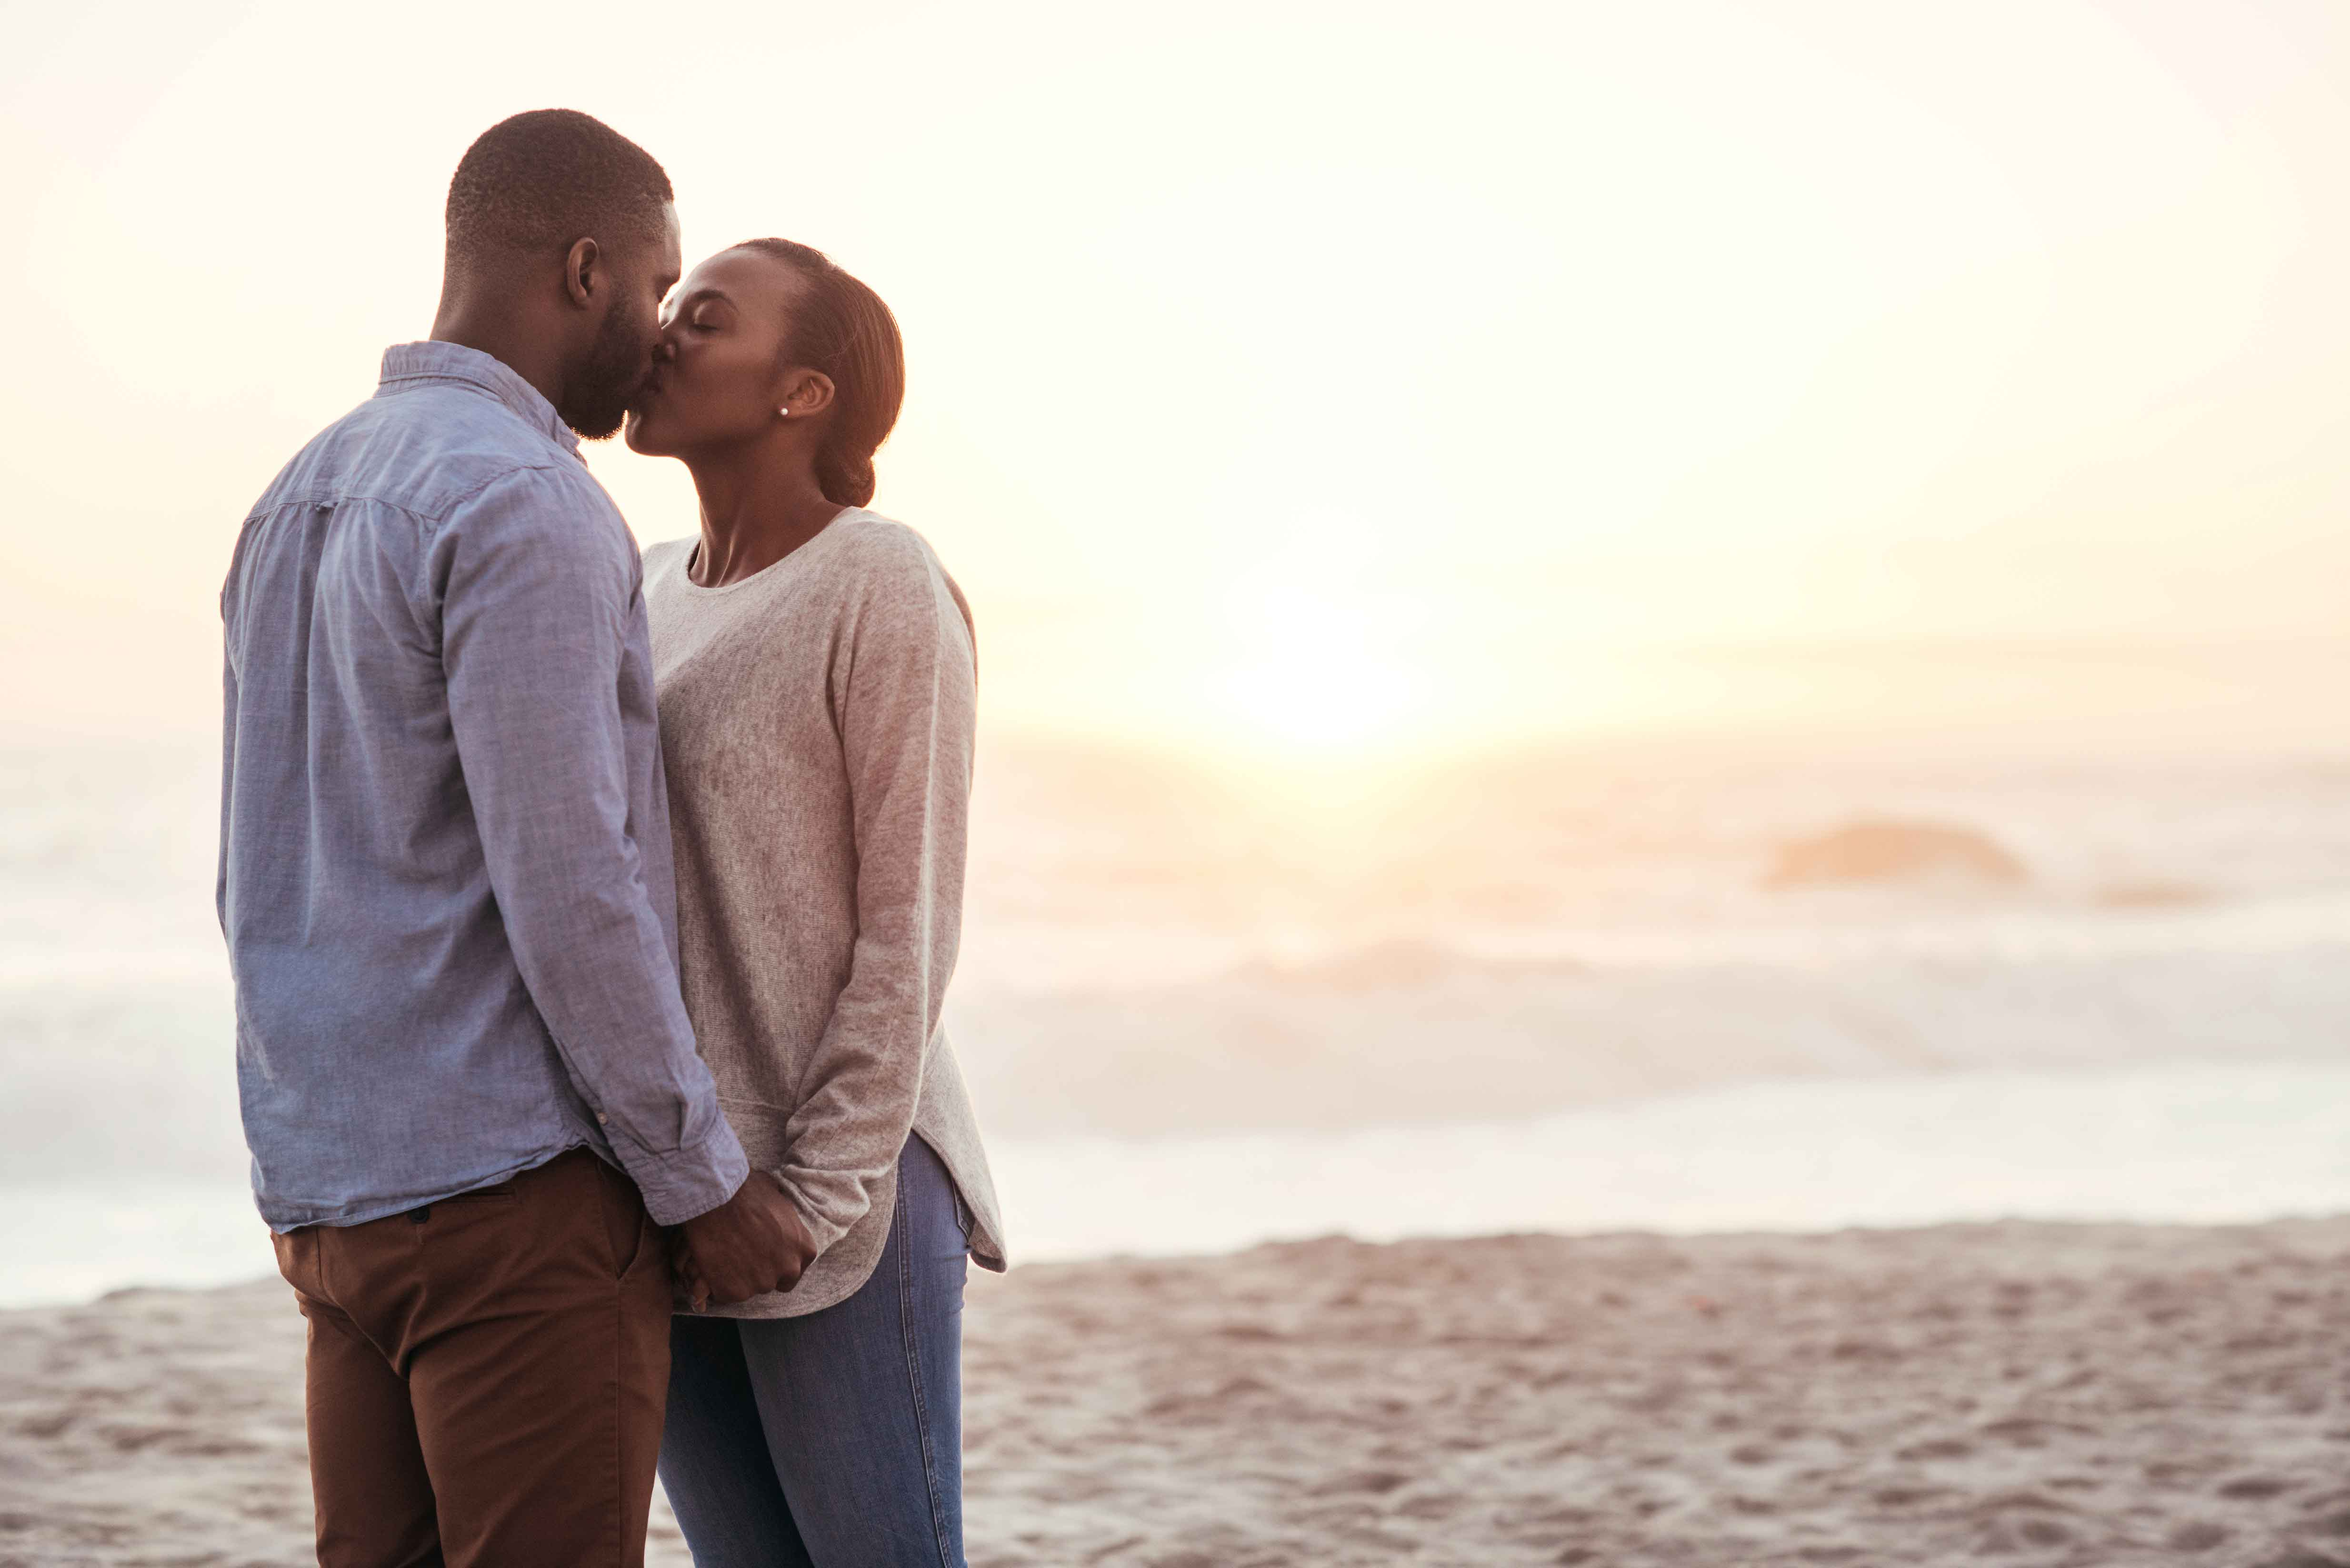 3 MARRIAGE LESSONS I'VE LEARNED